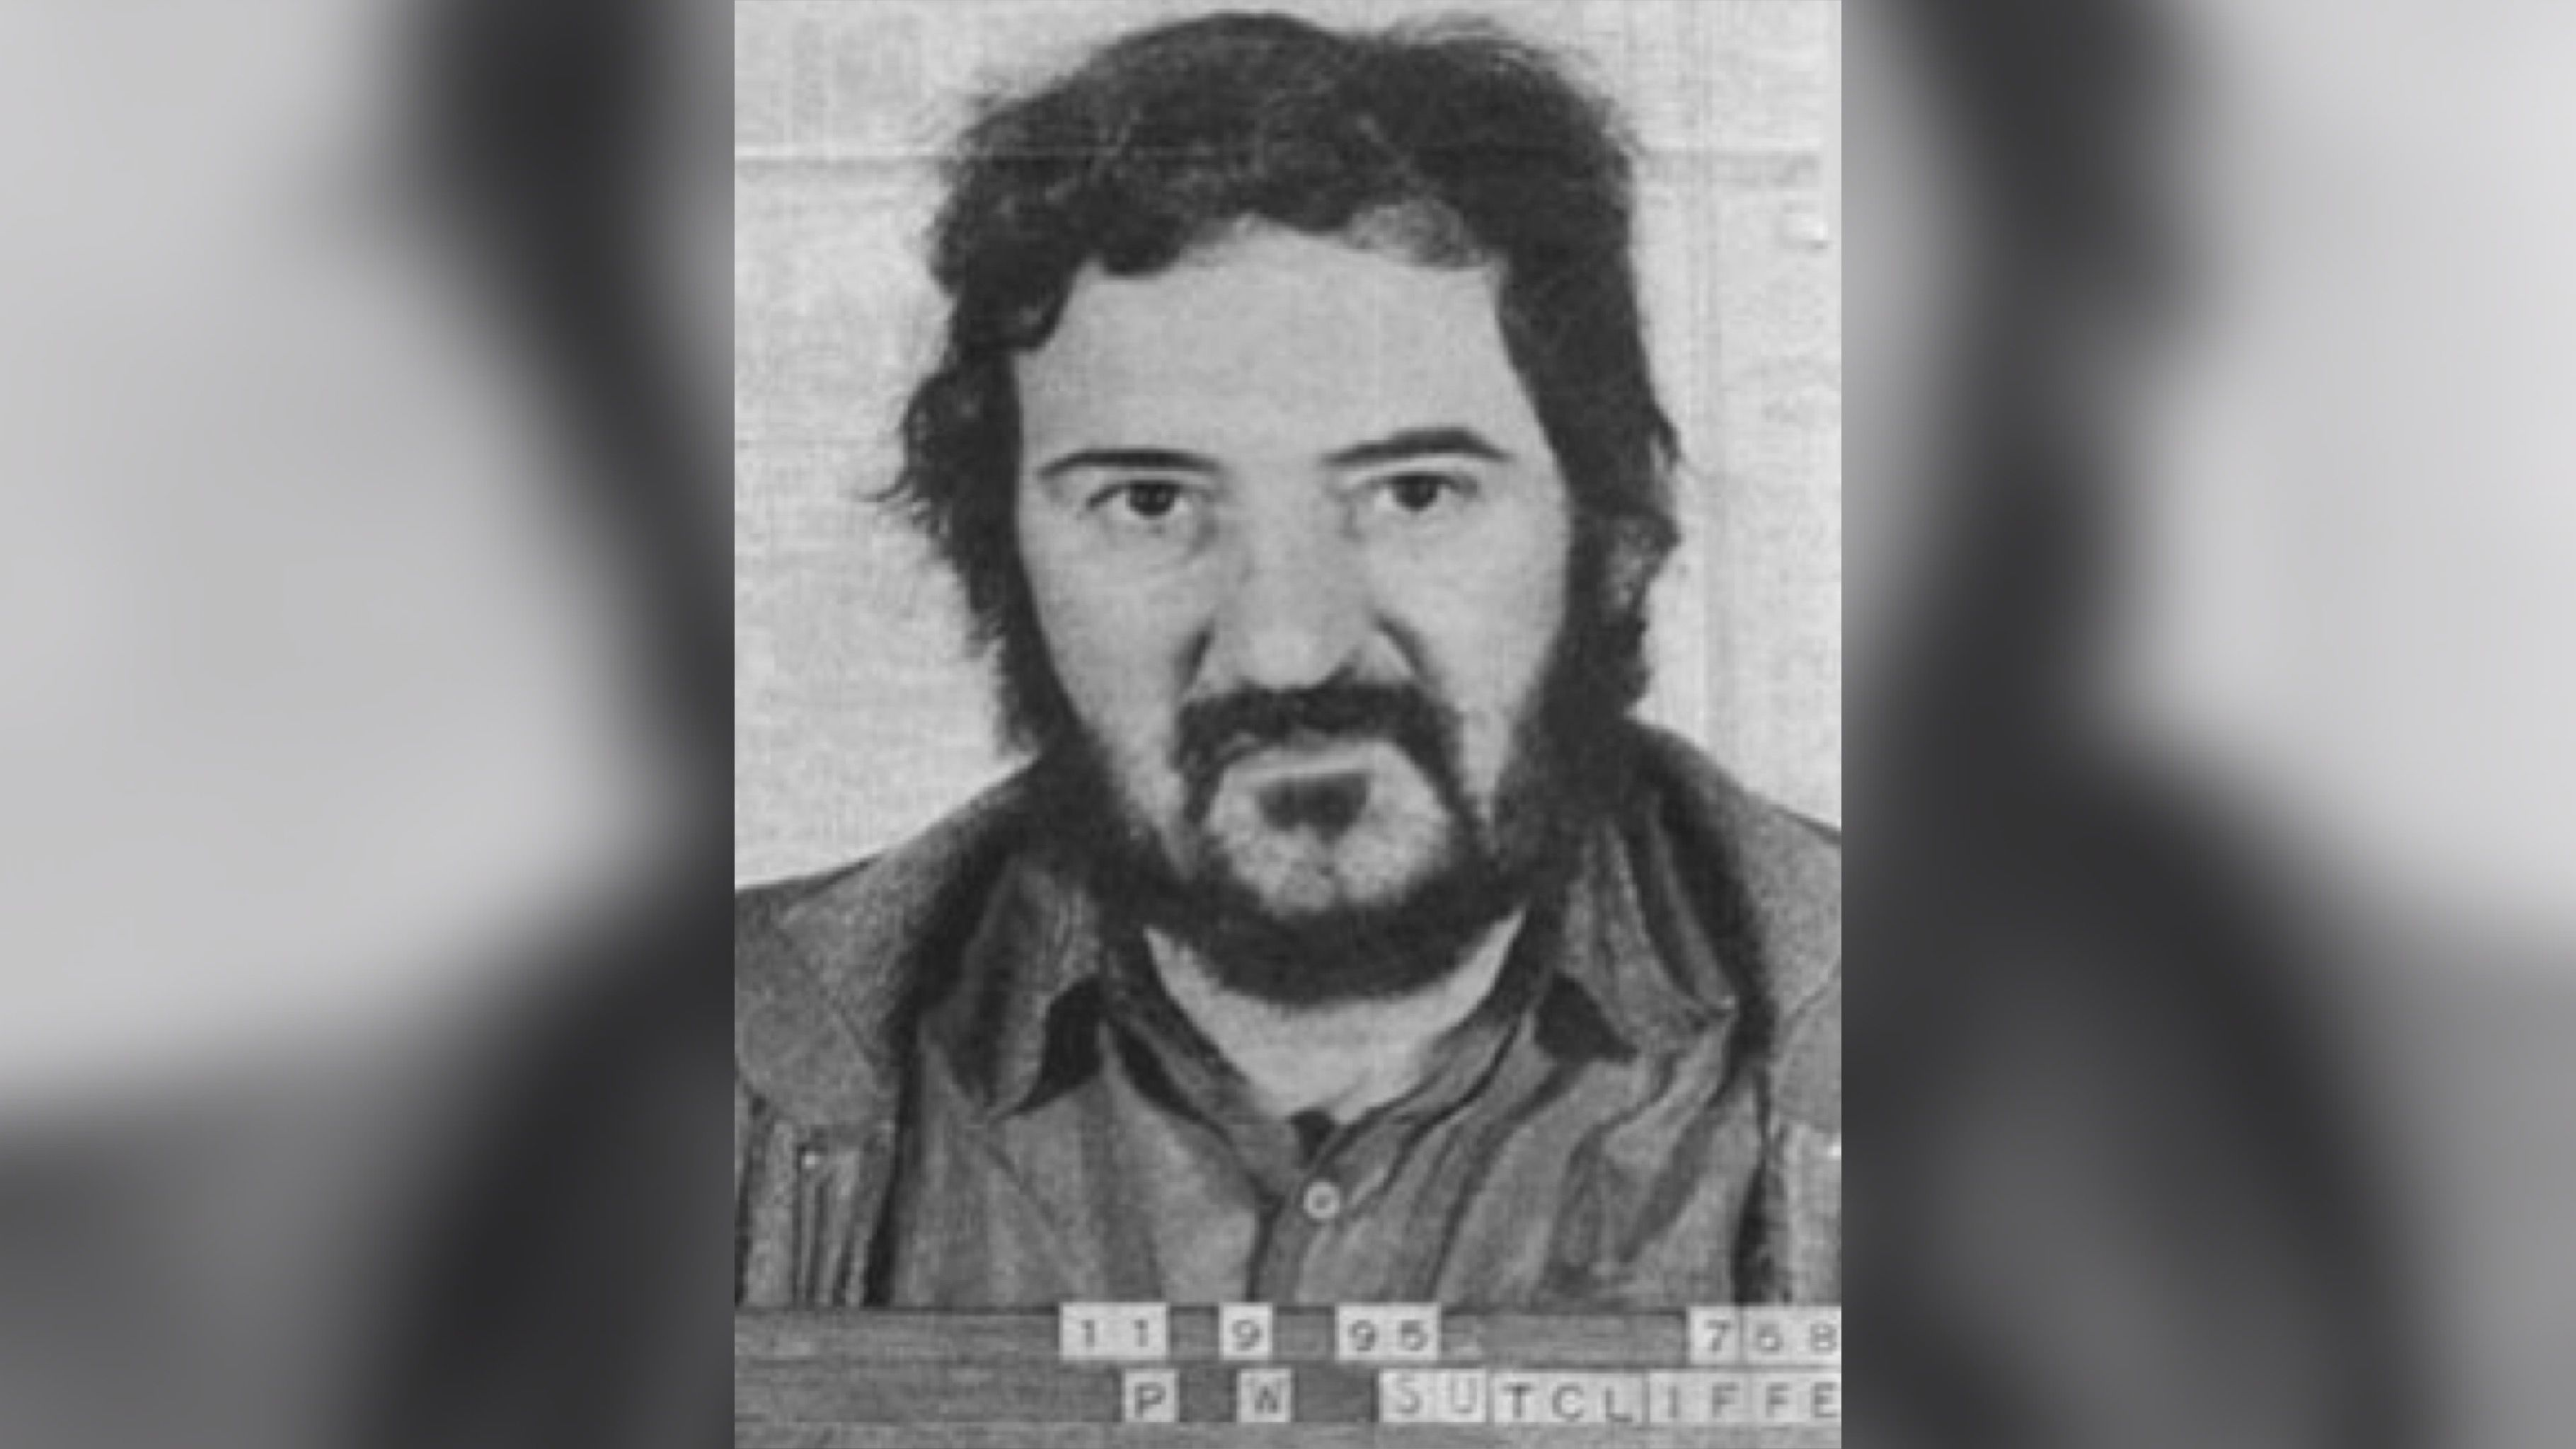 Yorkshire Ripper Documentary Netflix To Explore Peter Sutcliffe Crimes